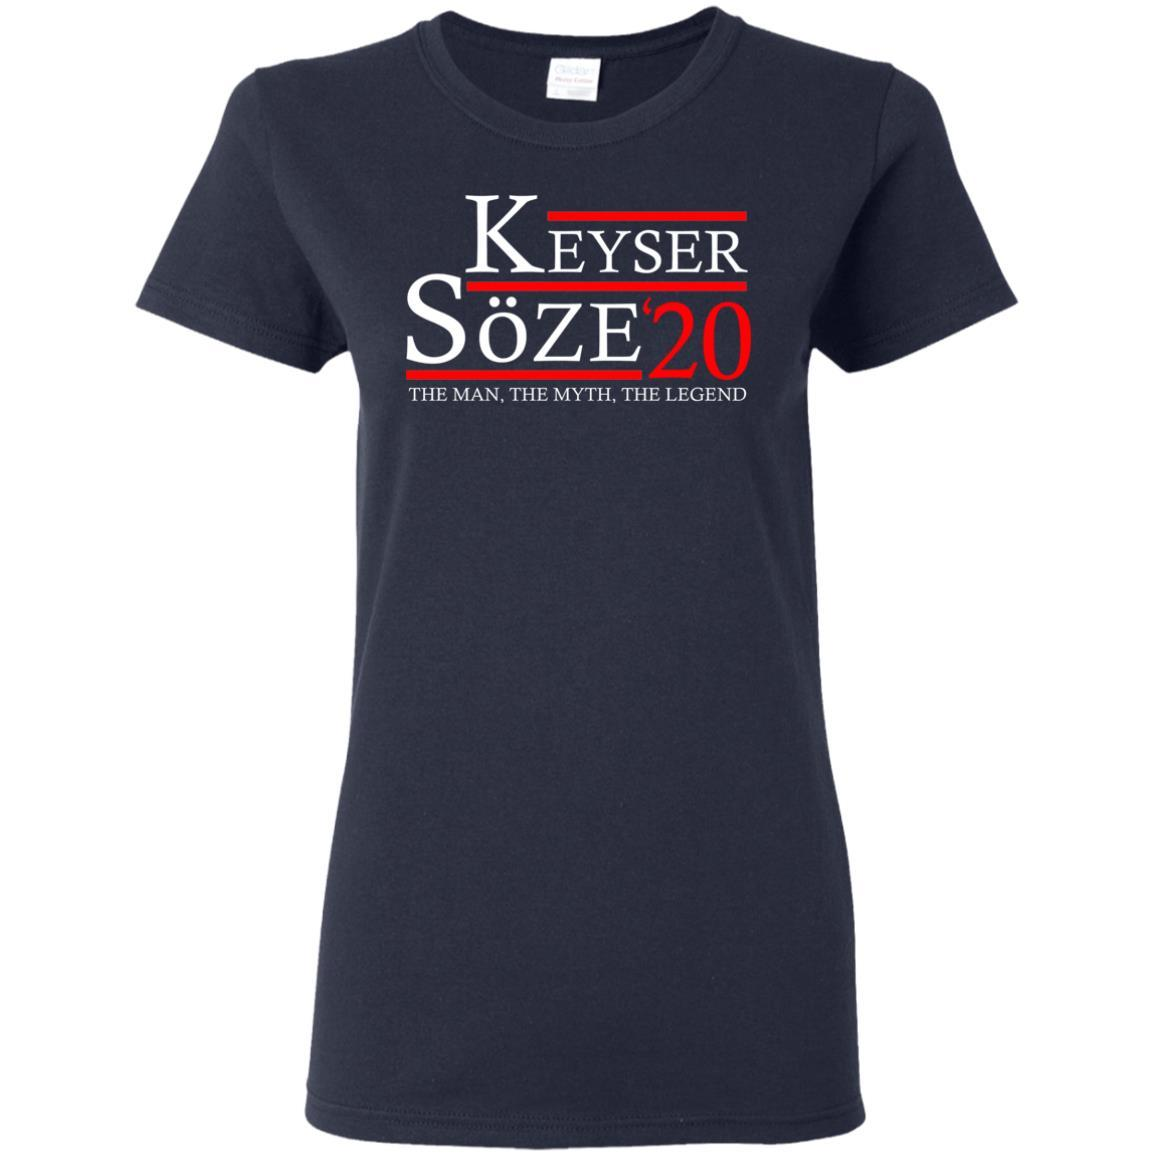 T-Shirts - Keyser Soze 20 Ladies Tee